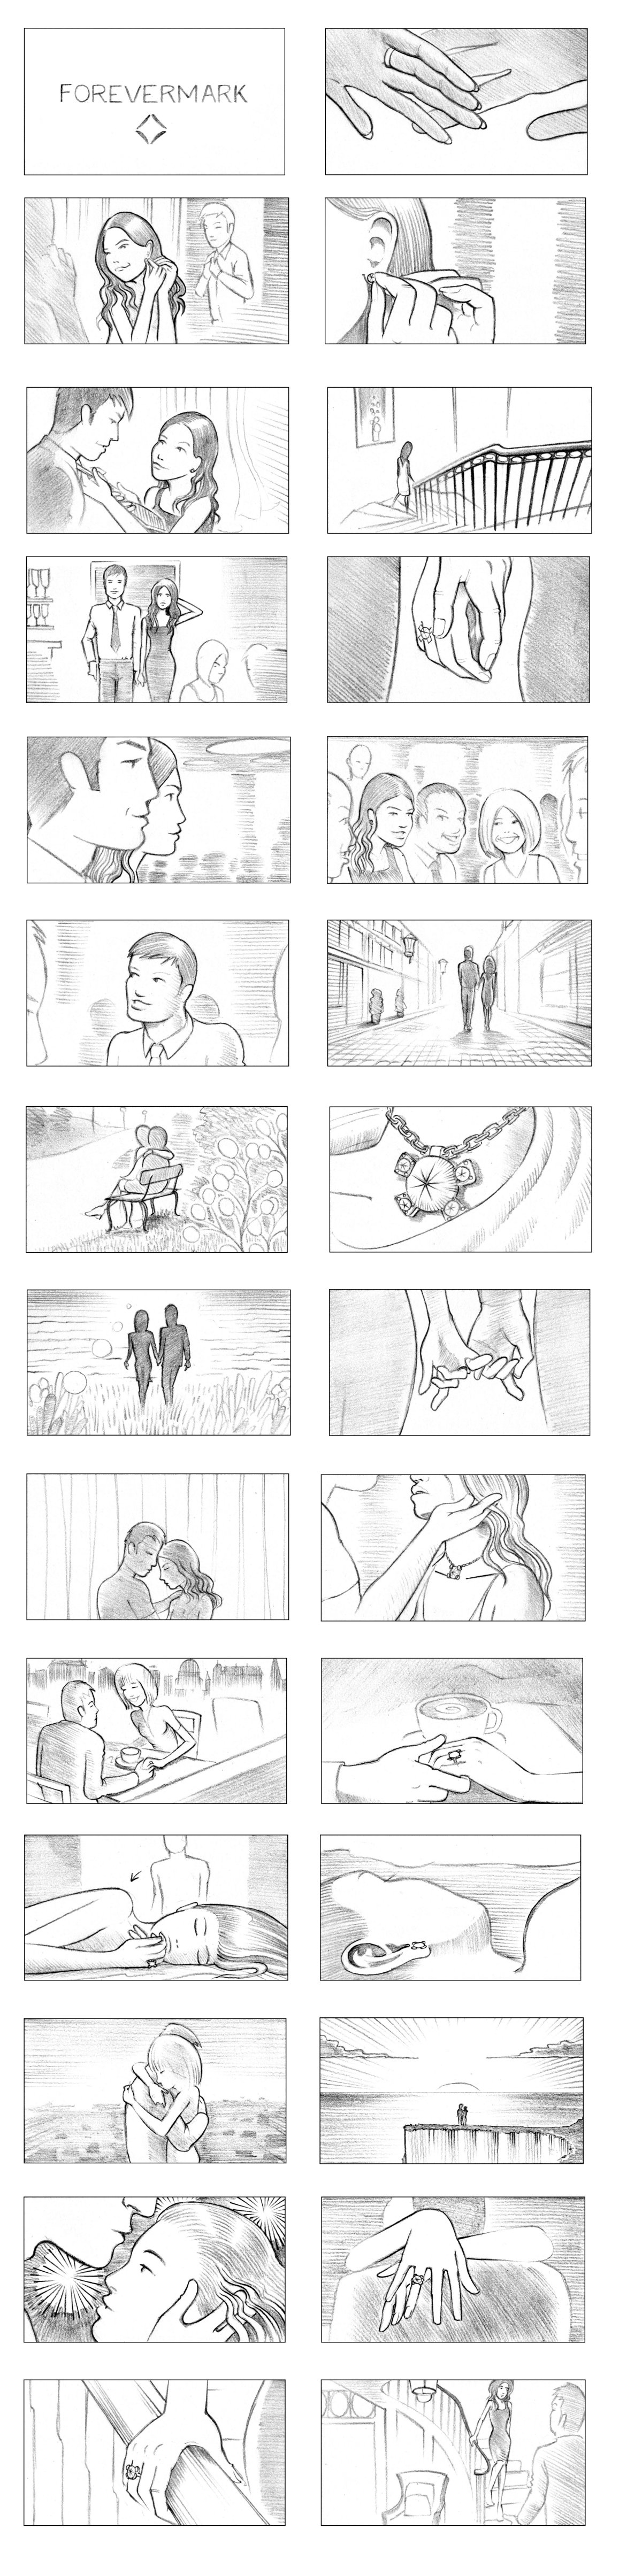 FOREVERMARK STORYBOARD BY ANDY SPARROW